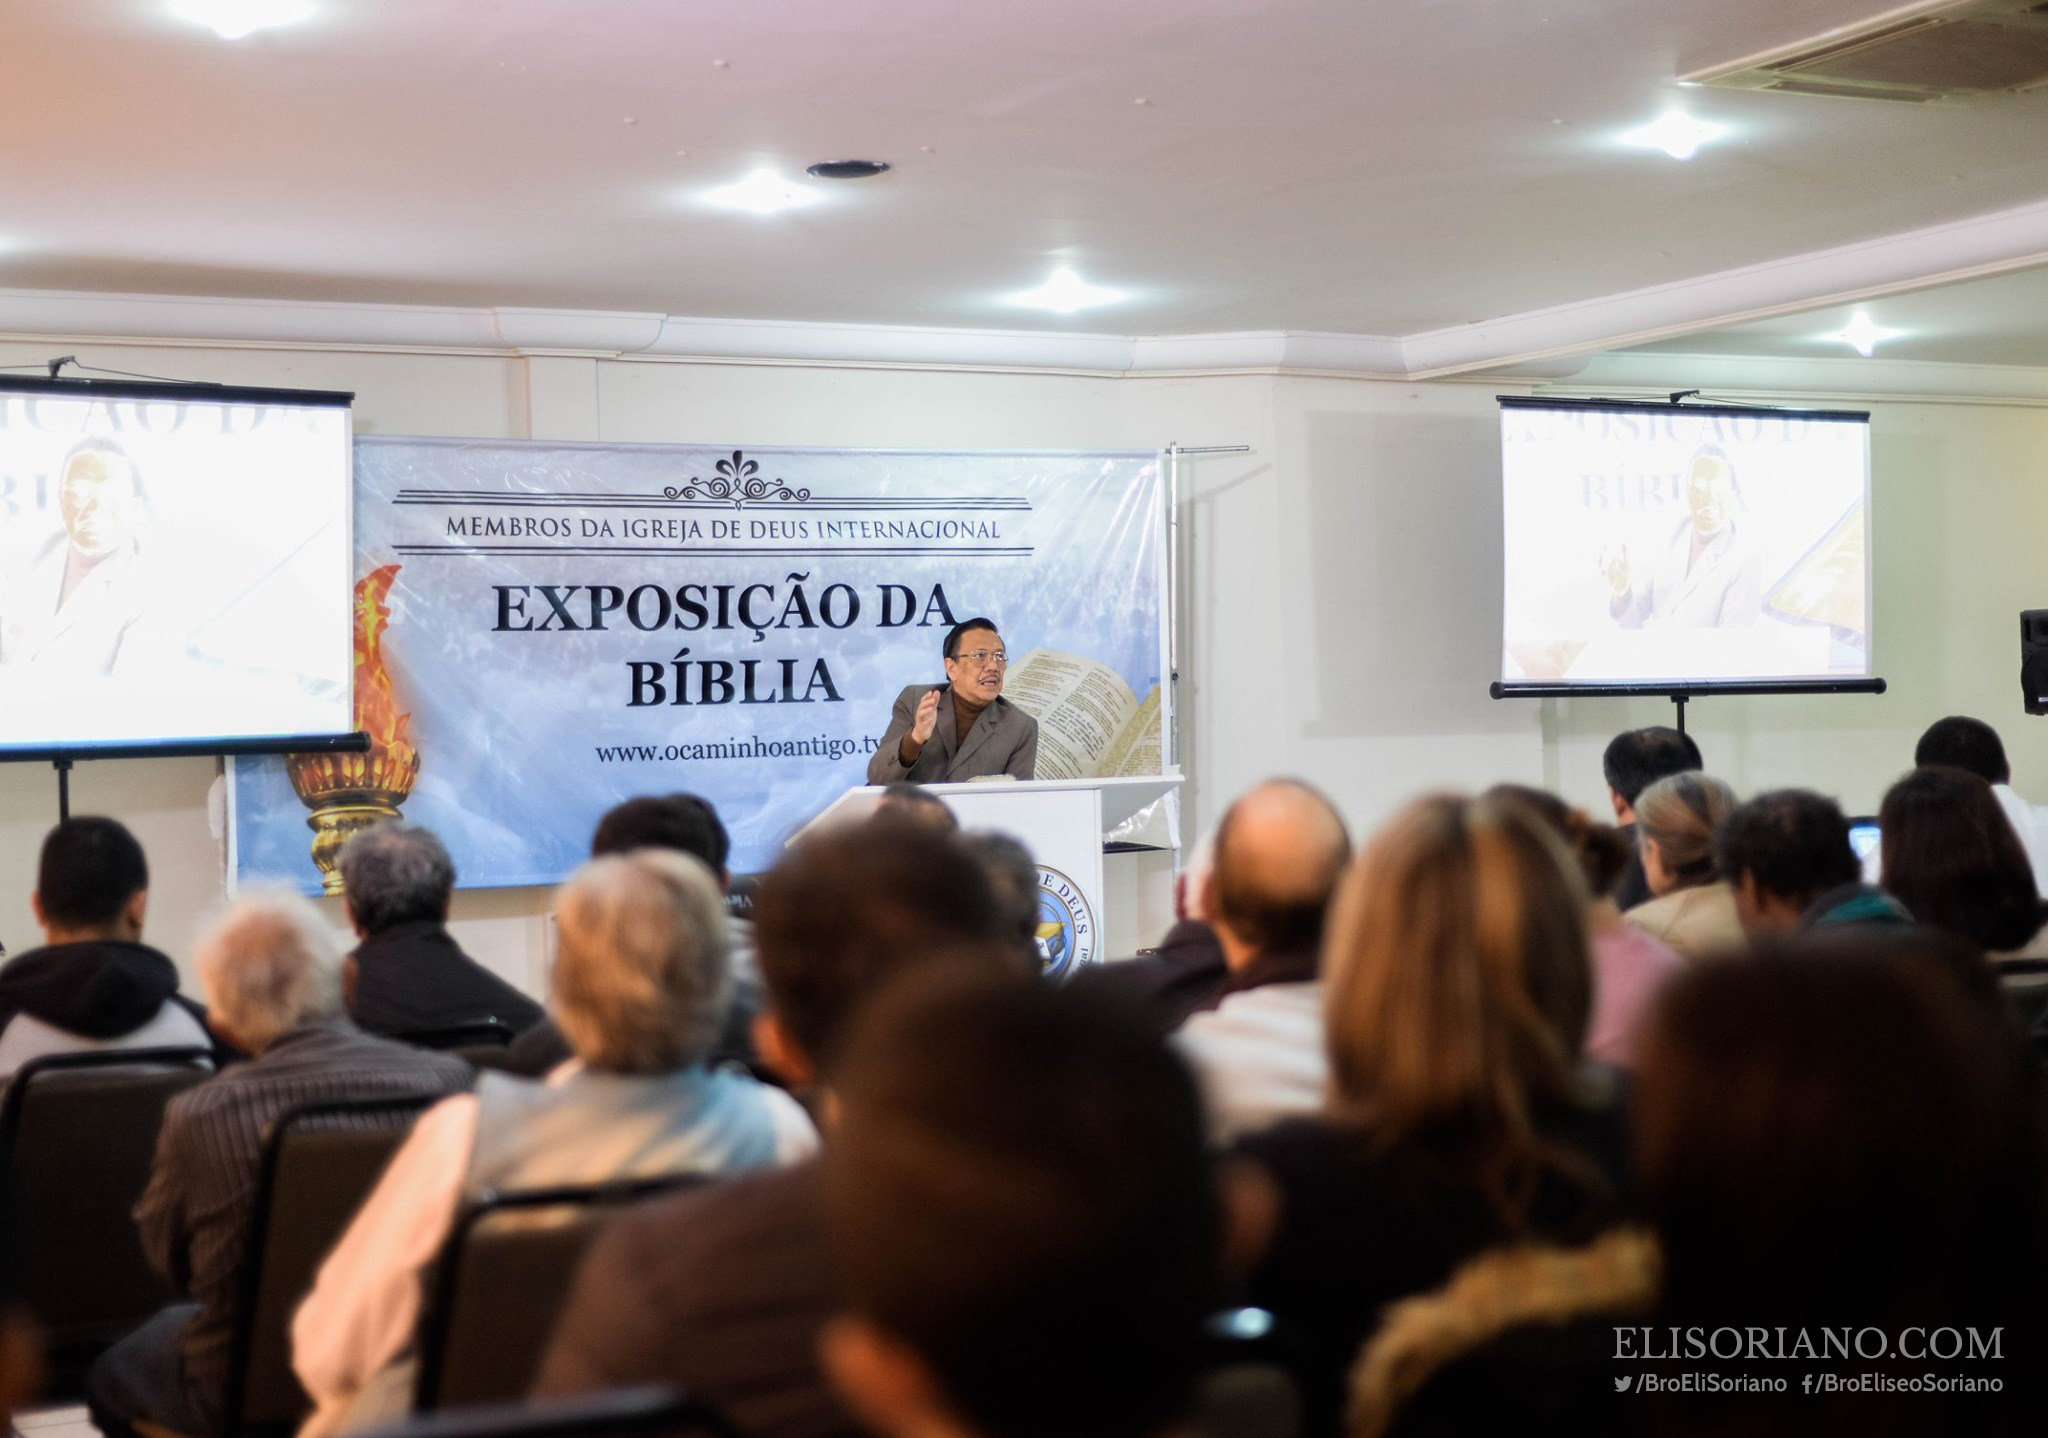 Reaching the other side of the globe, Bro. Eli Soriano replicated the evangelization works he started in the Philippines. In 2009, MCGI launched its own broadcast channel, TV Verdade, in South American Countries. Bible Expositions are personally conducted by Bro. Eli in various regions in Latin America such as Curitiba, Lages, and Florianopolis in an almost daily basis.  Courtesy: Percy Caroro | Photoville International